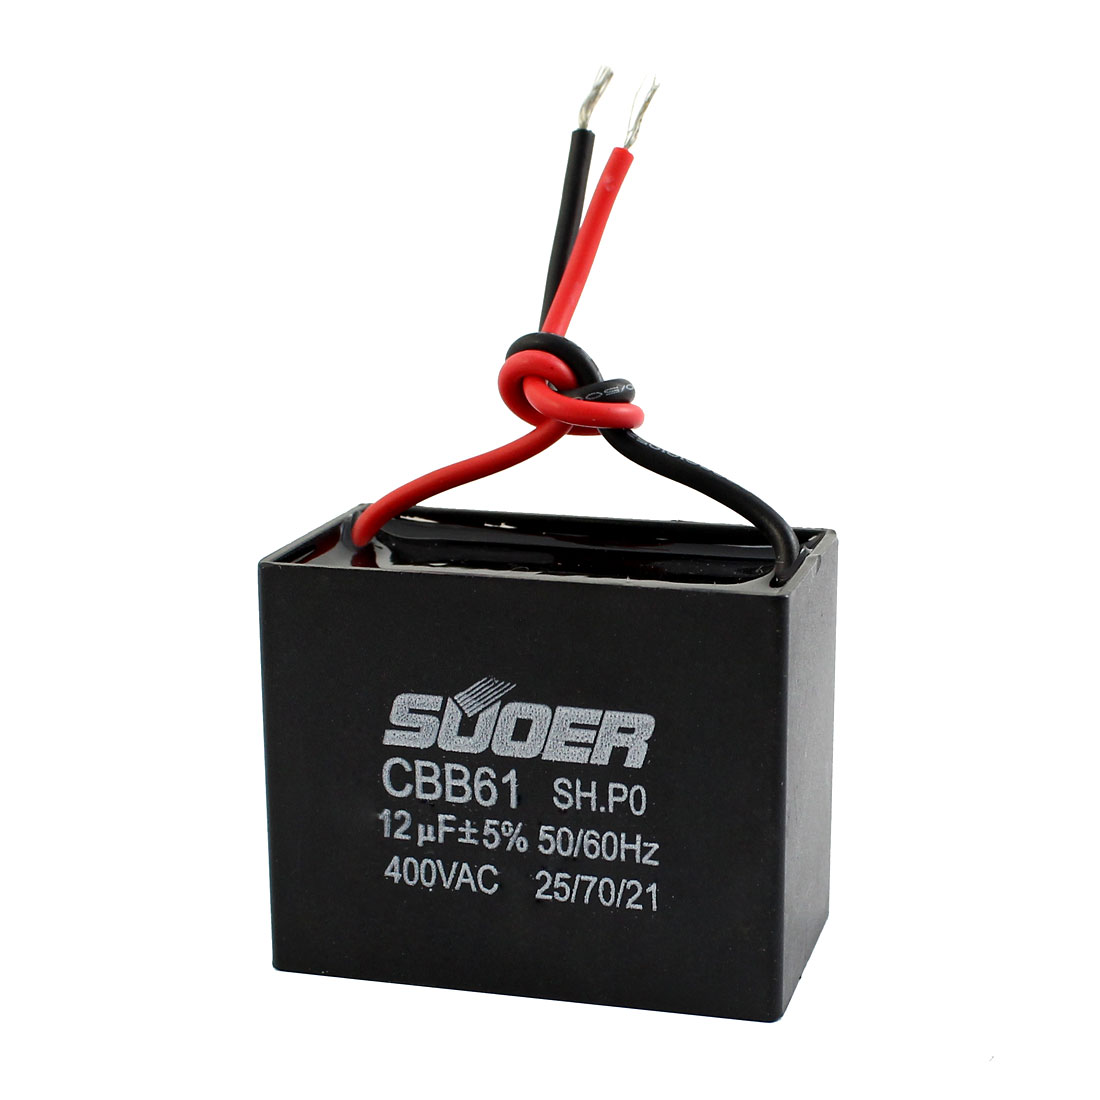 AC 400V 50/60Hz Black Polypropylene Film Rectangle Dual Wire Motor Run Capacitor 12uF CBB61 5%